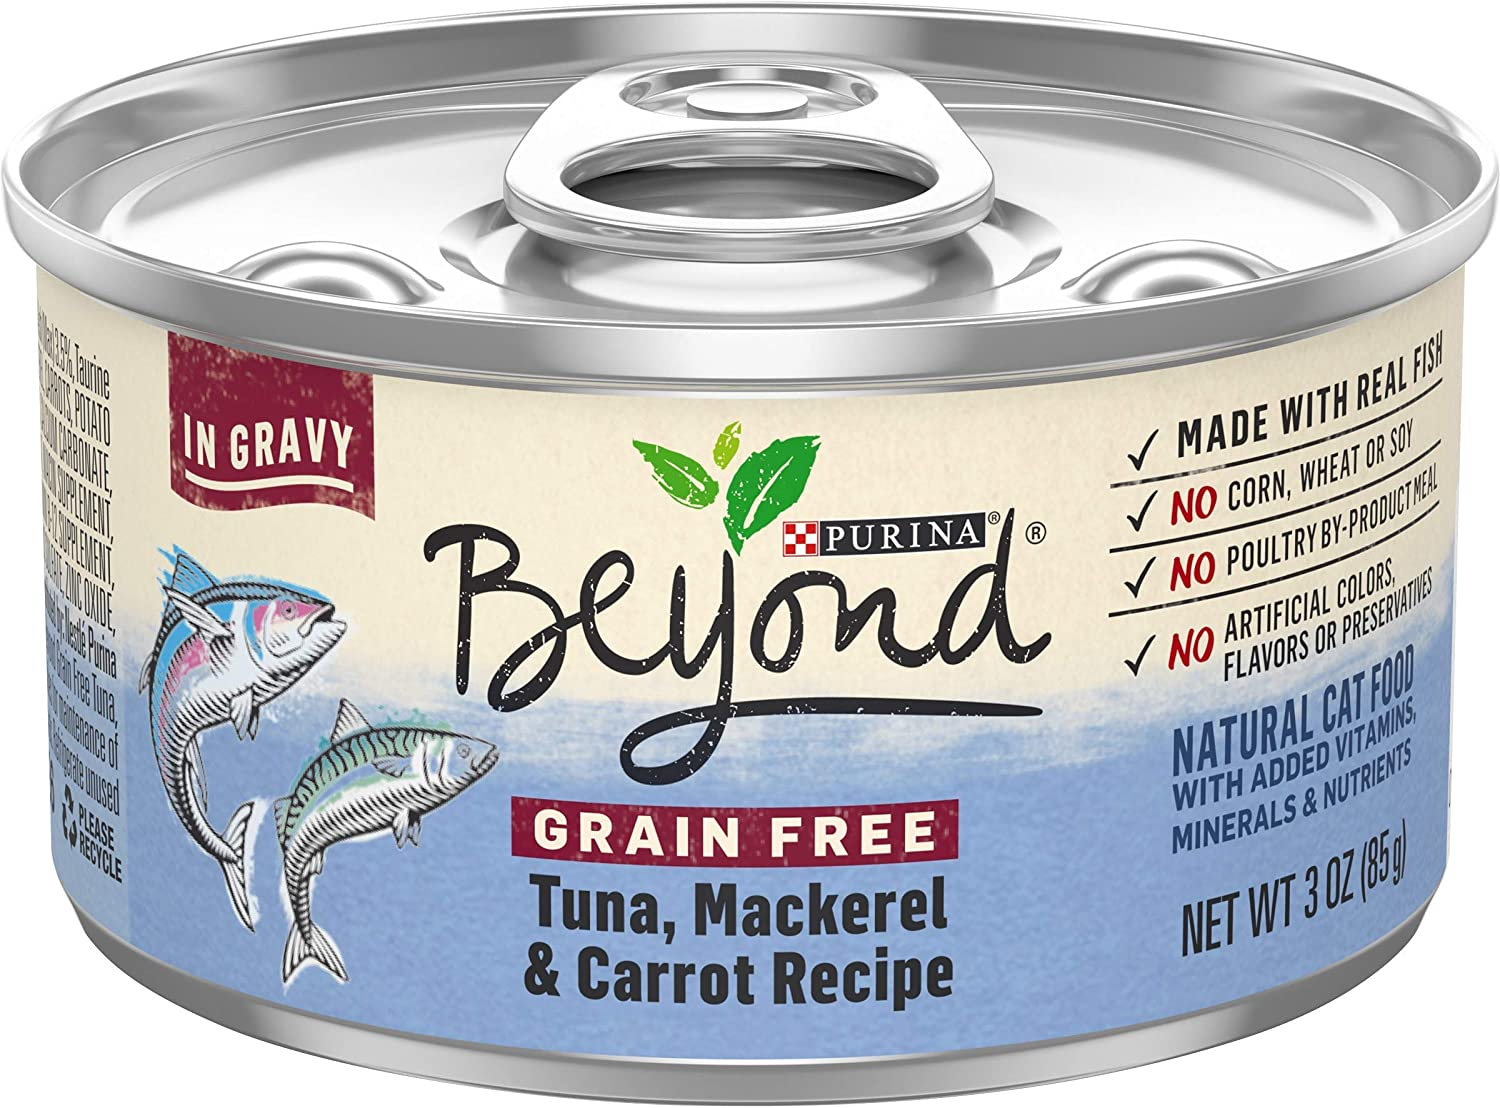 Purina Beyond Grain Free, Natural Gravy Wet Cat Food, Grain Free Tuna & Mackerel Recipe - (12) 3 oz. Cans